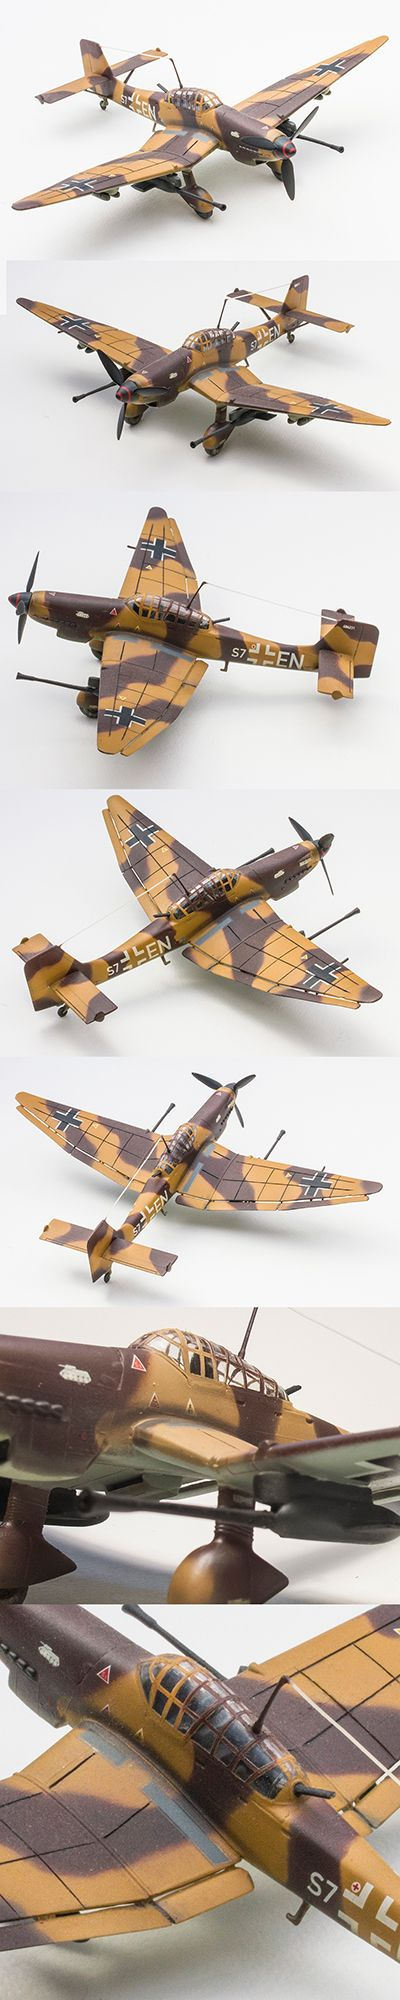 Stuka 1/72 Scale by Korhan AKBAYTOGAN